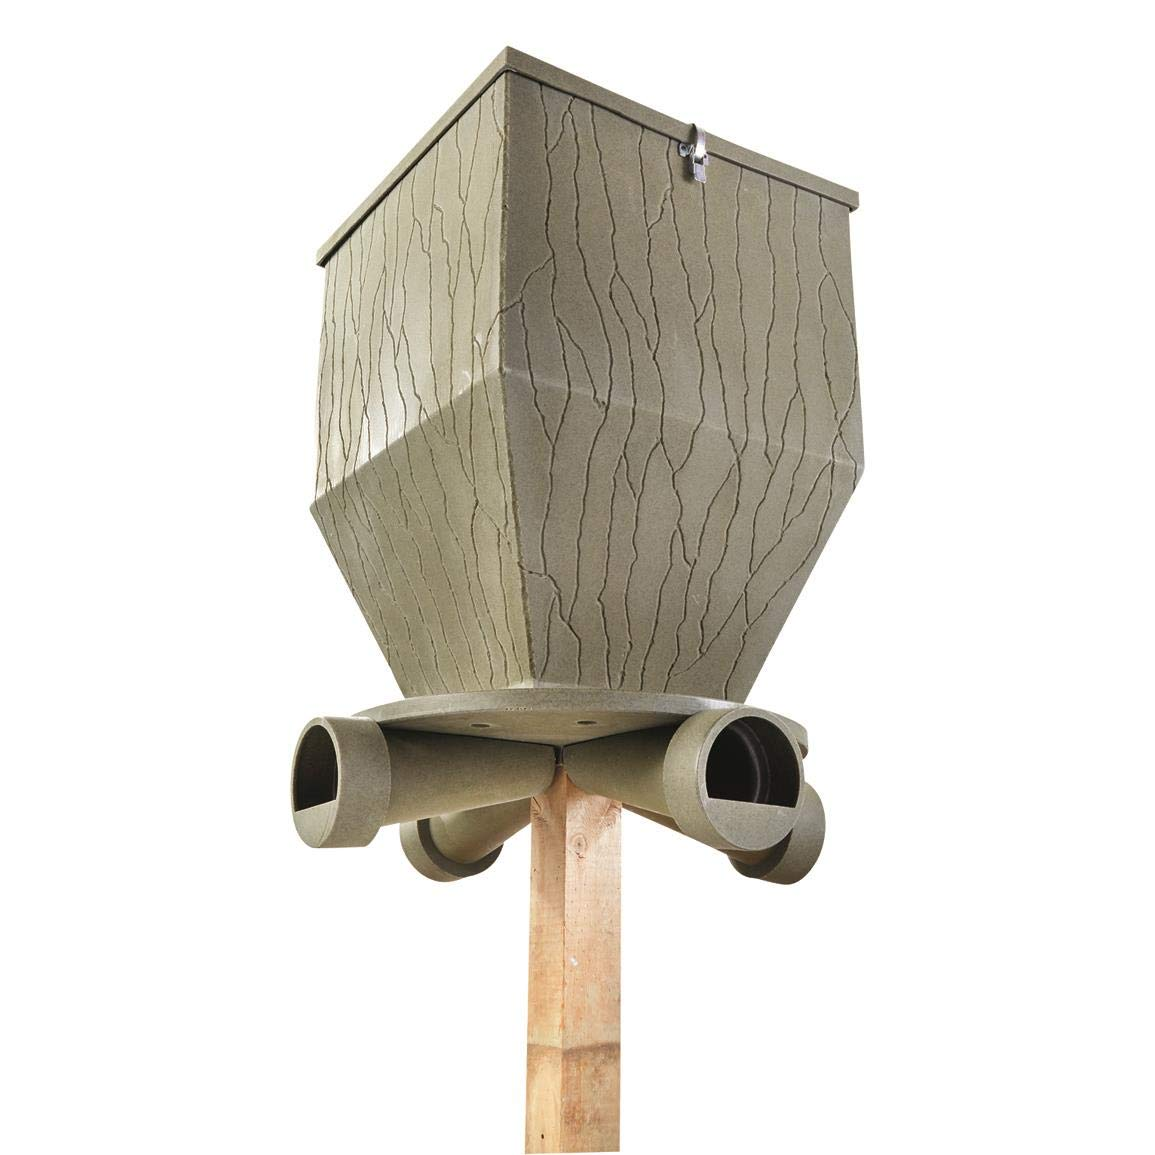 Banks Outdoors Feed Bank Gravity Feeder, 300 lb. Capacity by Banks Outdoors